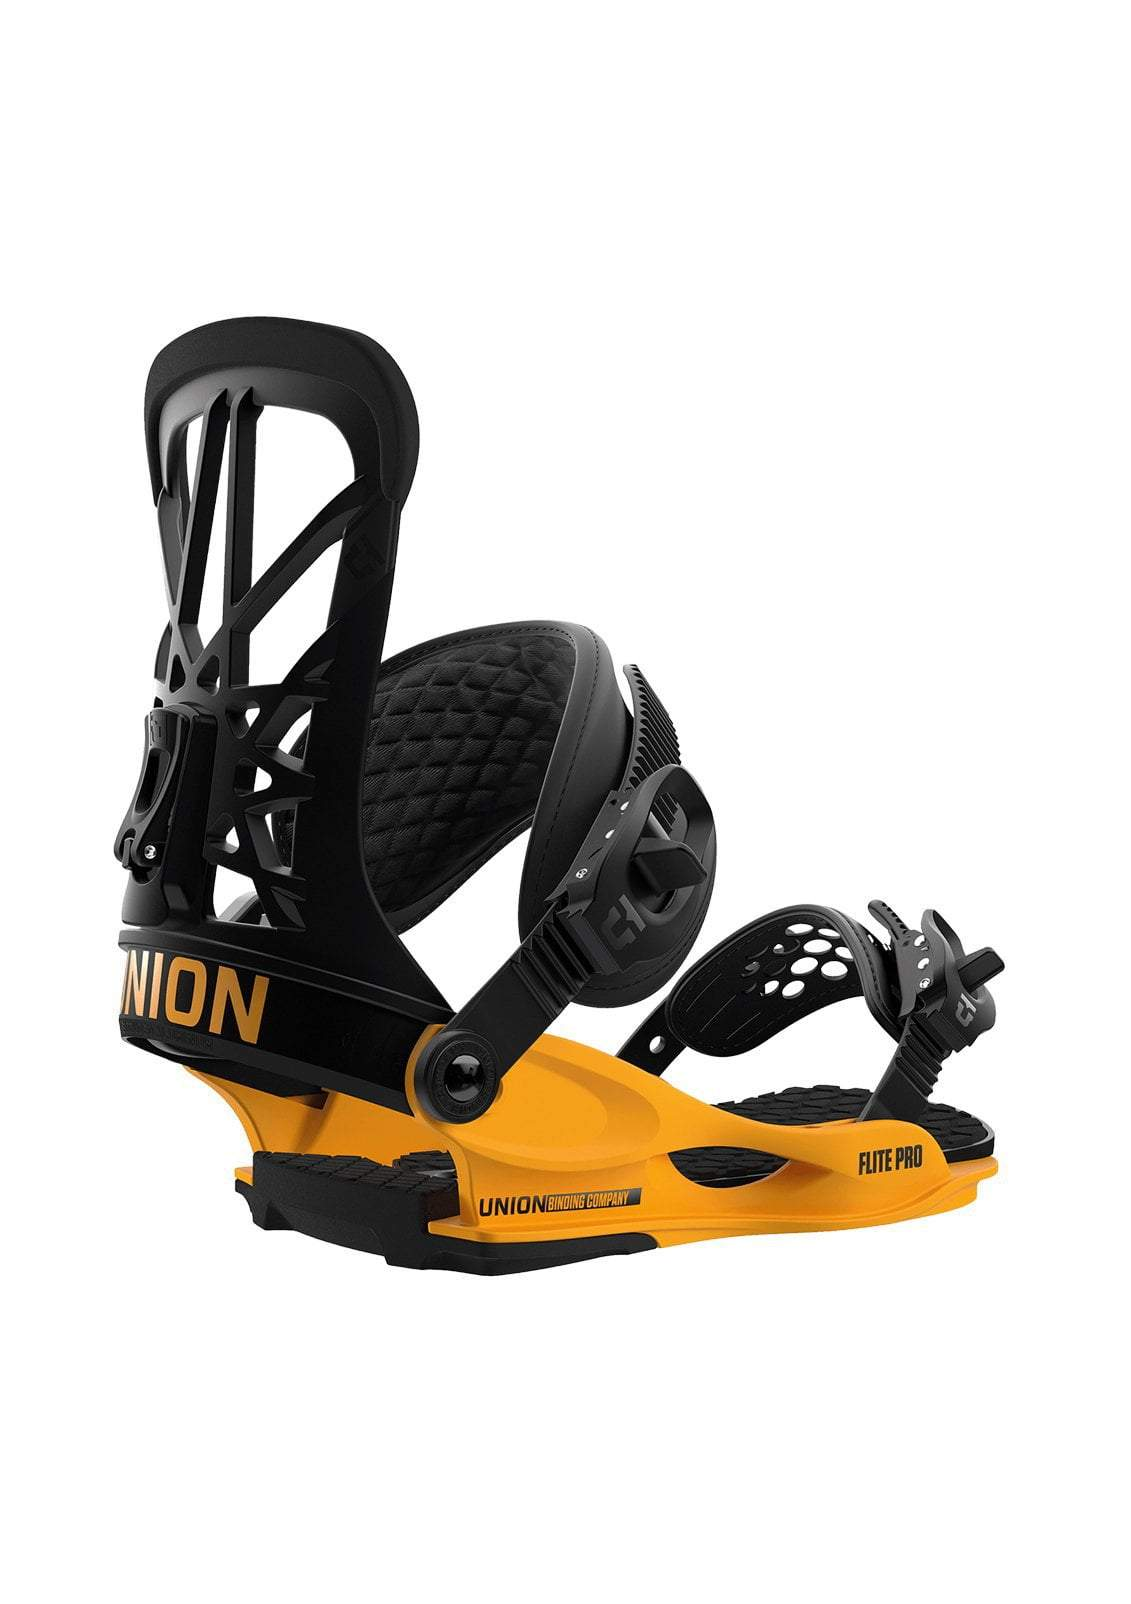 Union Flite Pro Bindings 2018/2019